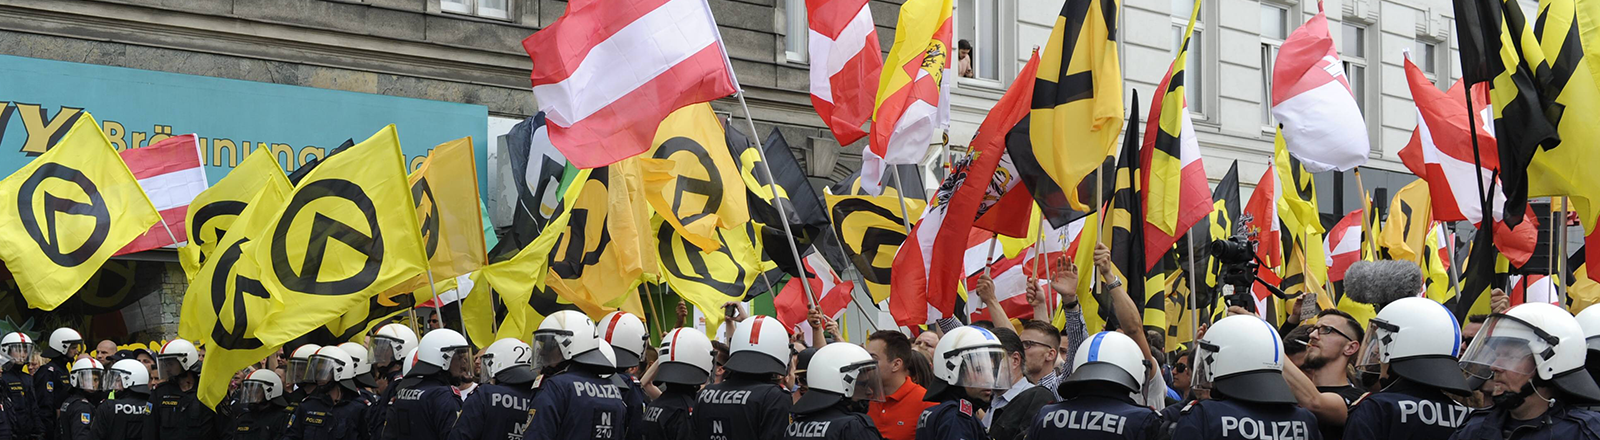 Demonstration der Identitären in Wien 2016